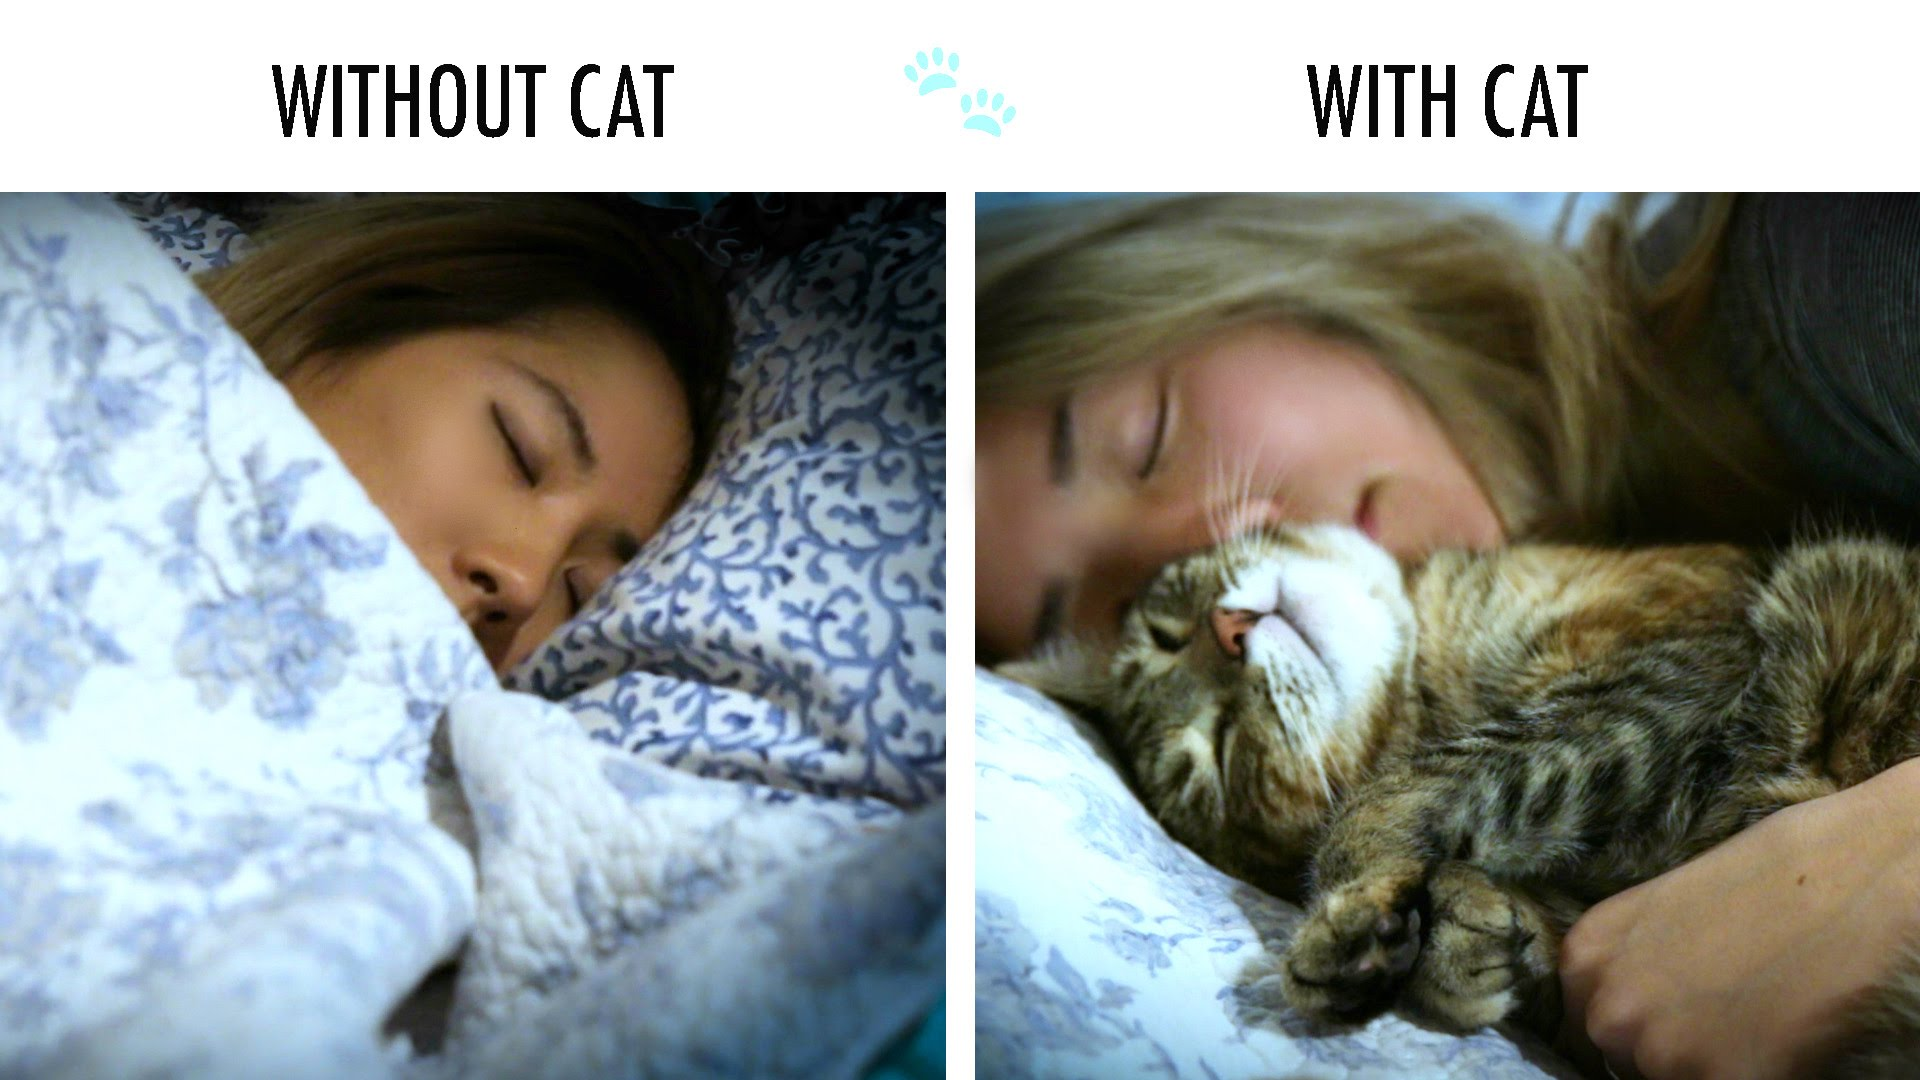 Life without and with a cat